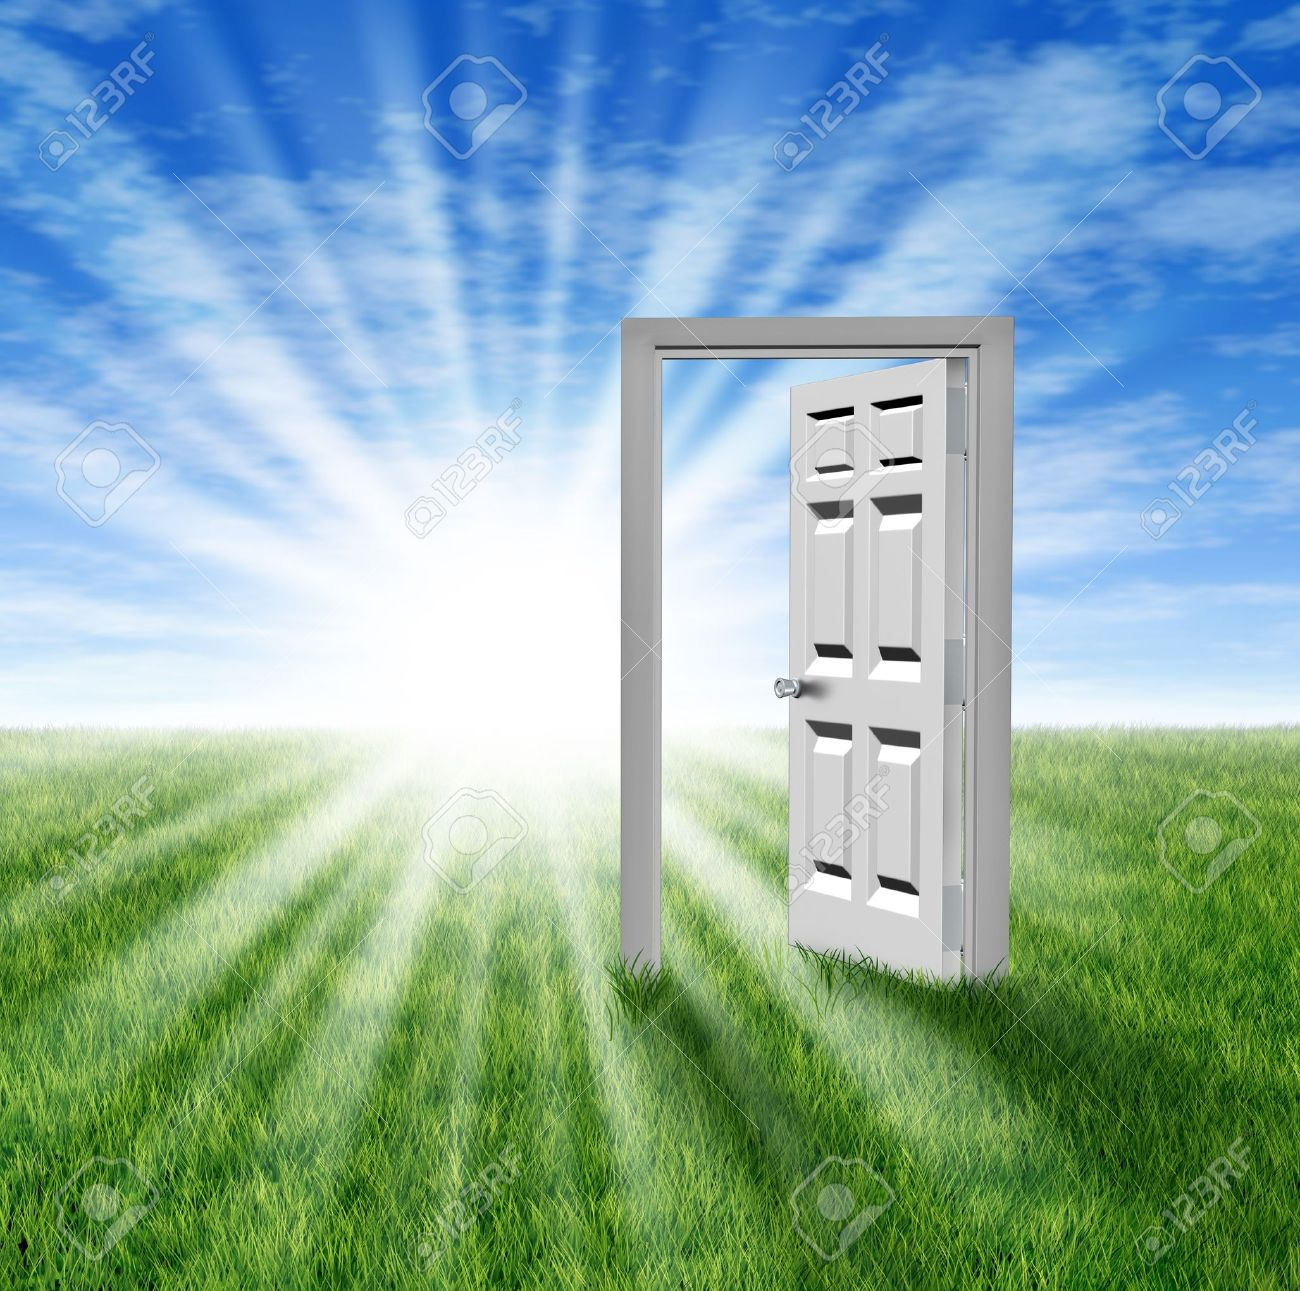 goals and aspirations as a door to opportunity a grass field goals and aspirations as a door to opportunity a grass field and an open doorway